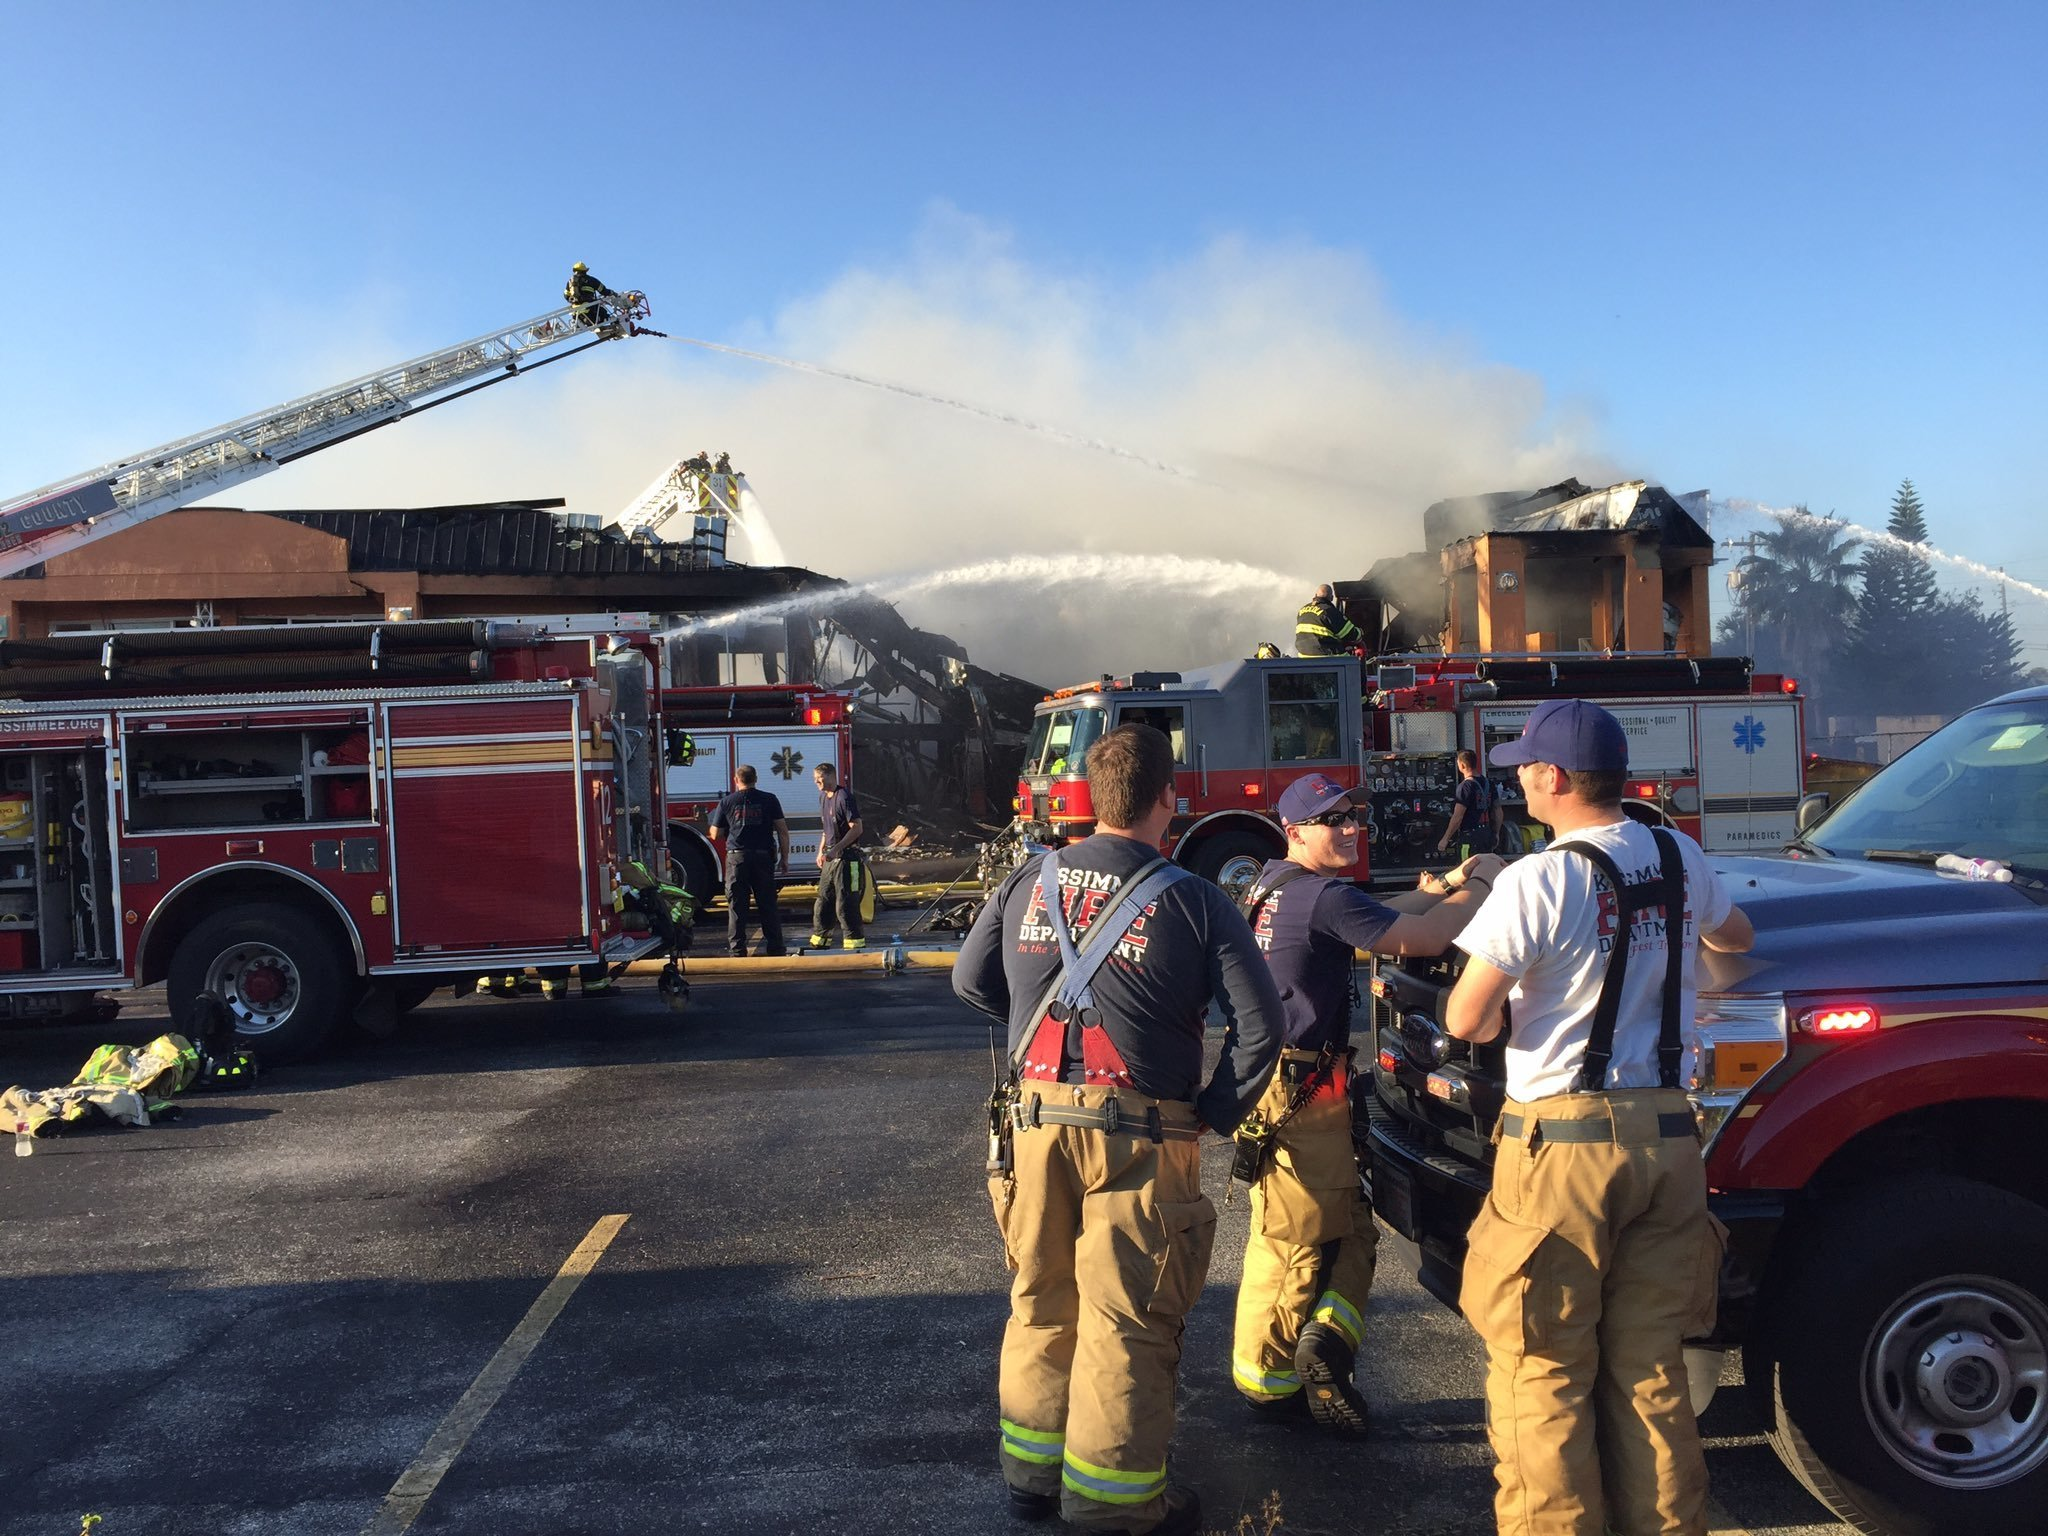 About 250 Displaced As Large Blaze Destroys Osceola Hotel Orlando Sentinel